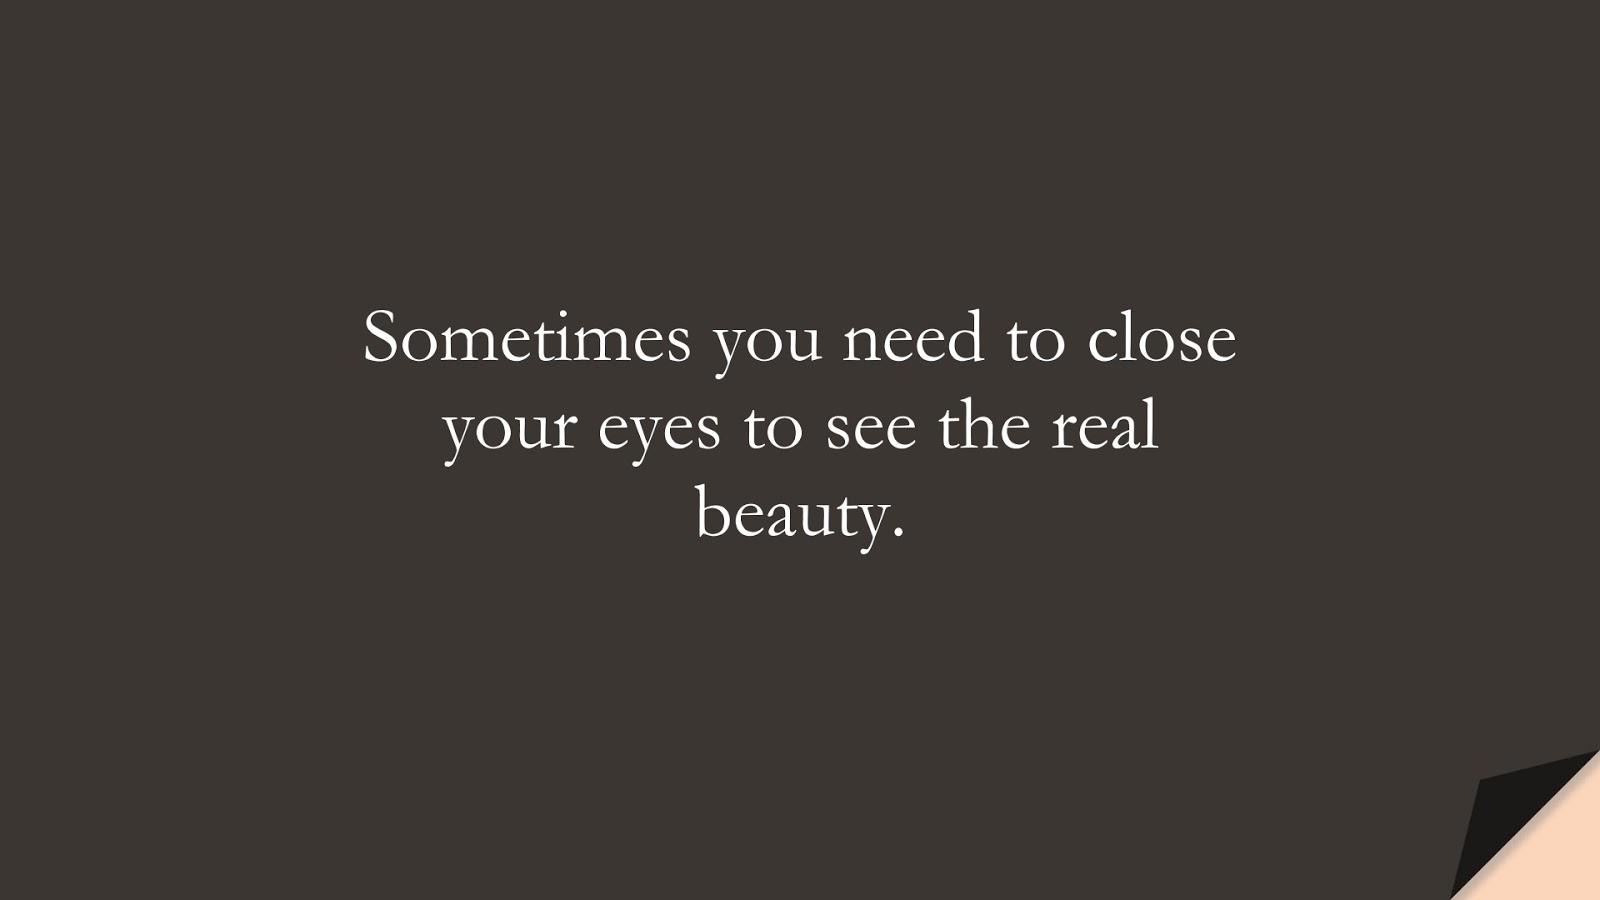 Sometimes you need to close your eyes to see the real beauty.FALSE